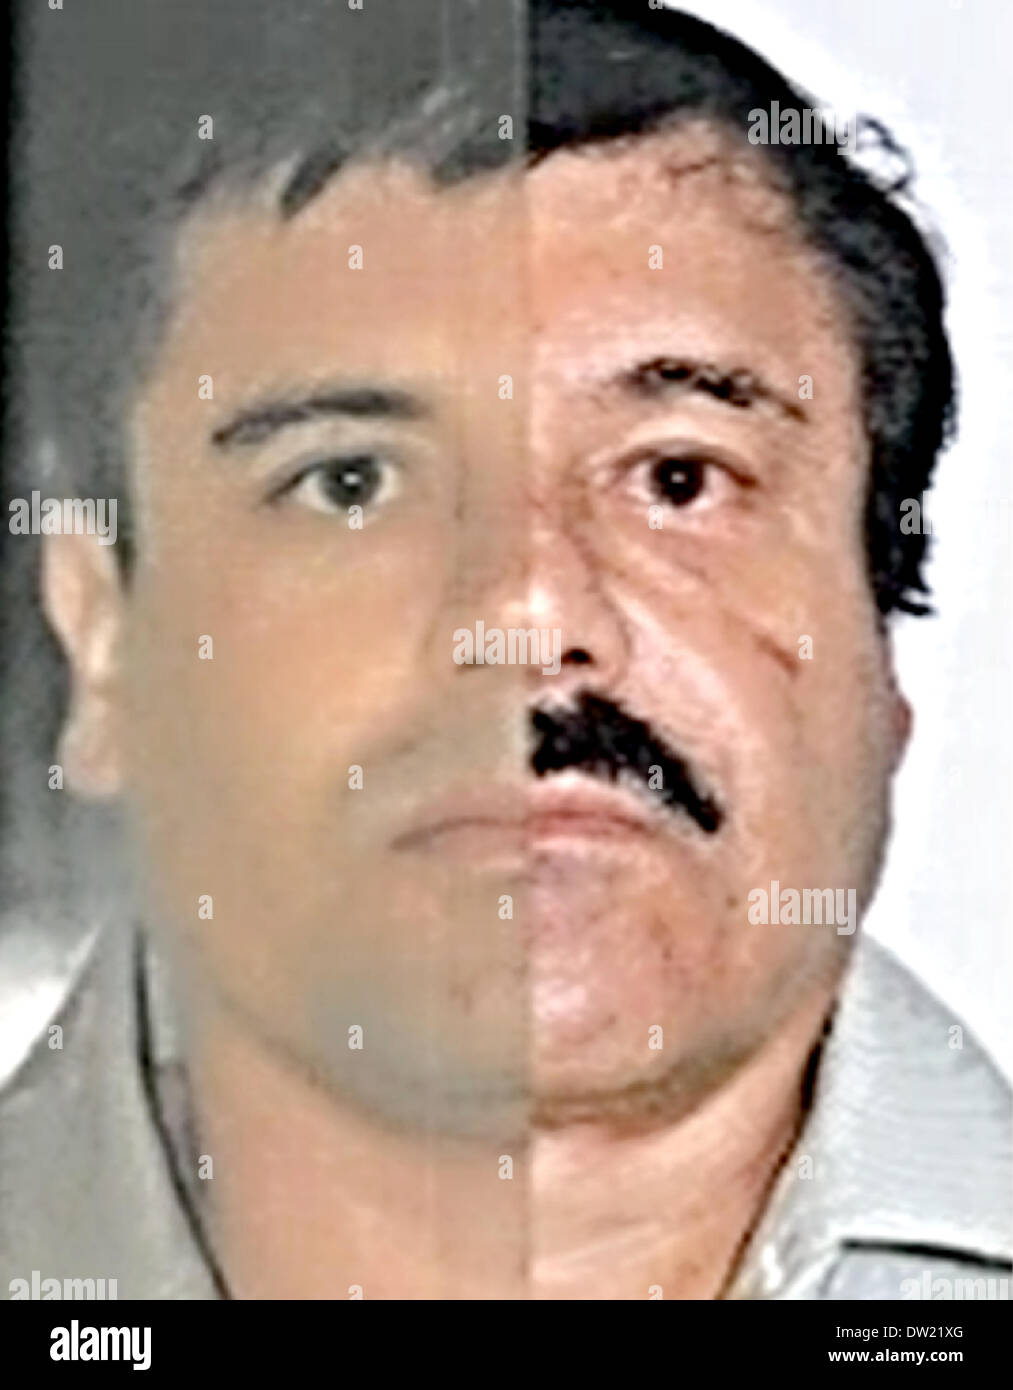 Mexico City. 25th Feb, 2014. Combo photo released by Mexico's Attorney General Office (PGR) with identification mapping marks made by the source to point out similarities in face measurements, shows Joaquin 'El Chapo' Guzman, using images made from his 1993 and 2014 detentions. The Sinaloa Cartel leader was subjected to a buccal swab, a phisiognomic identity study and a test of 10 fingerprints Credit:  Mexico's Attorney General Office/Xinhua/Alamy Live News - Stock Image